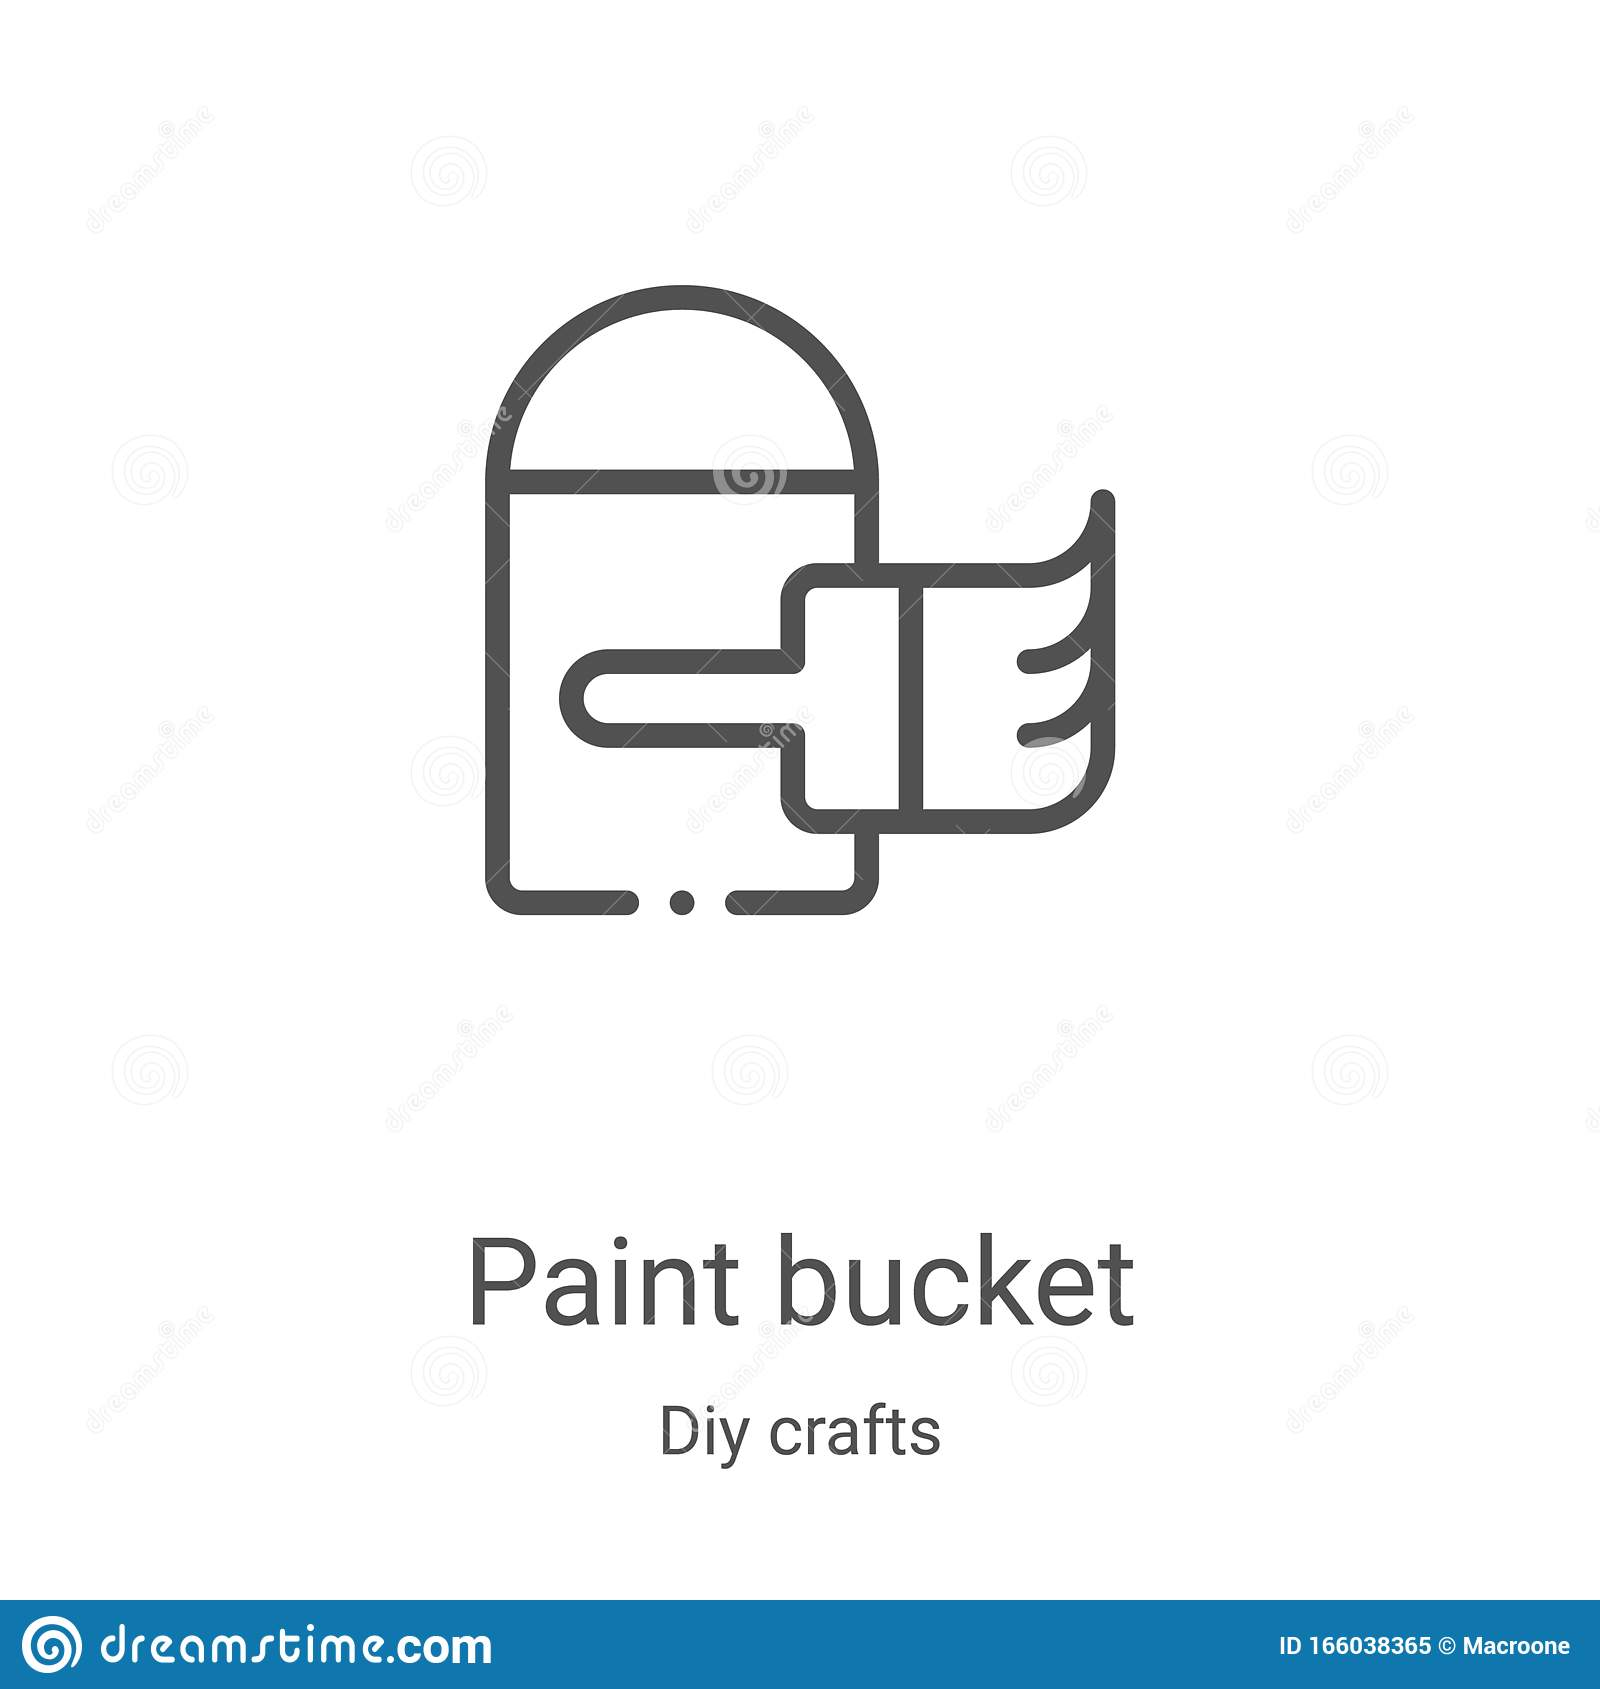 Paint Bucket Icon Vector From Diy Crafts Collection Thin Line Paint Bucket Outline Icon Vector Illustration Linear Symbol For Stock Vector Illustration Of Liquid Equipment 166038365